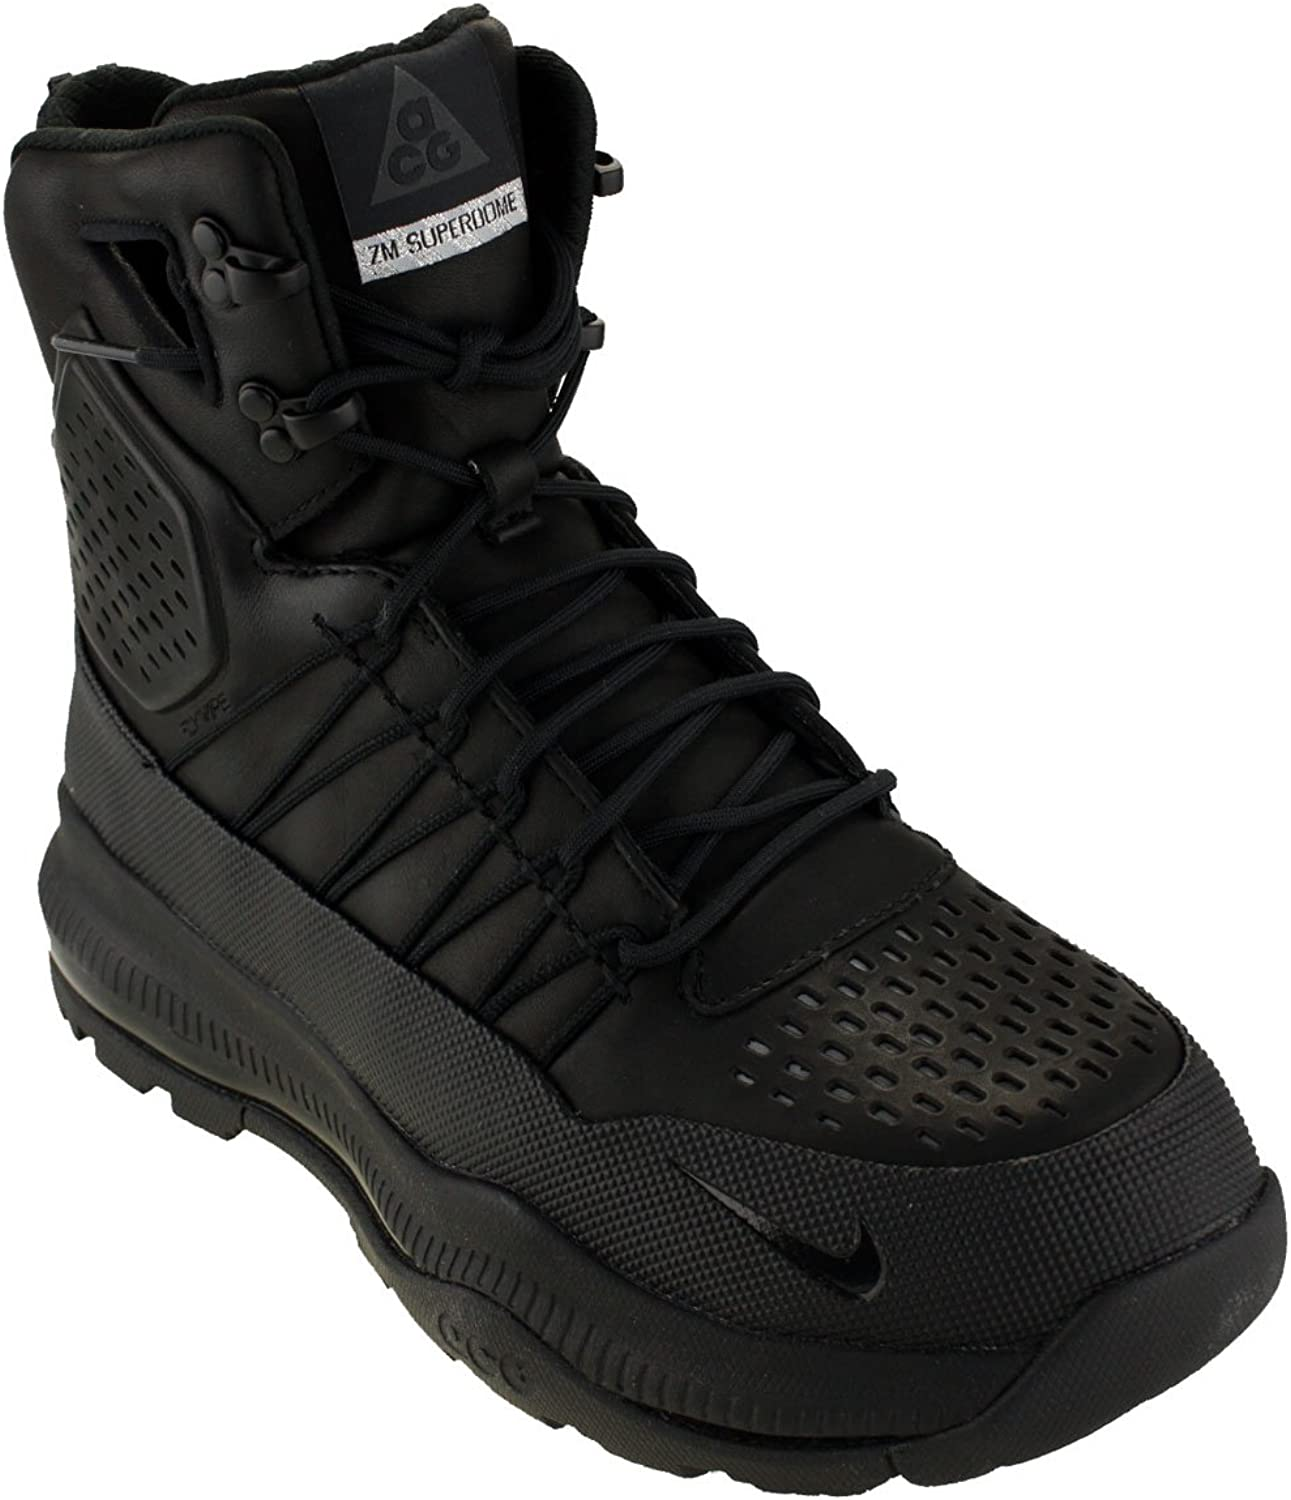 Nike ACG Zoom Superdome Black 3M Boots Sneakers 654886 040_8